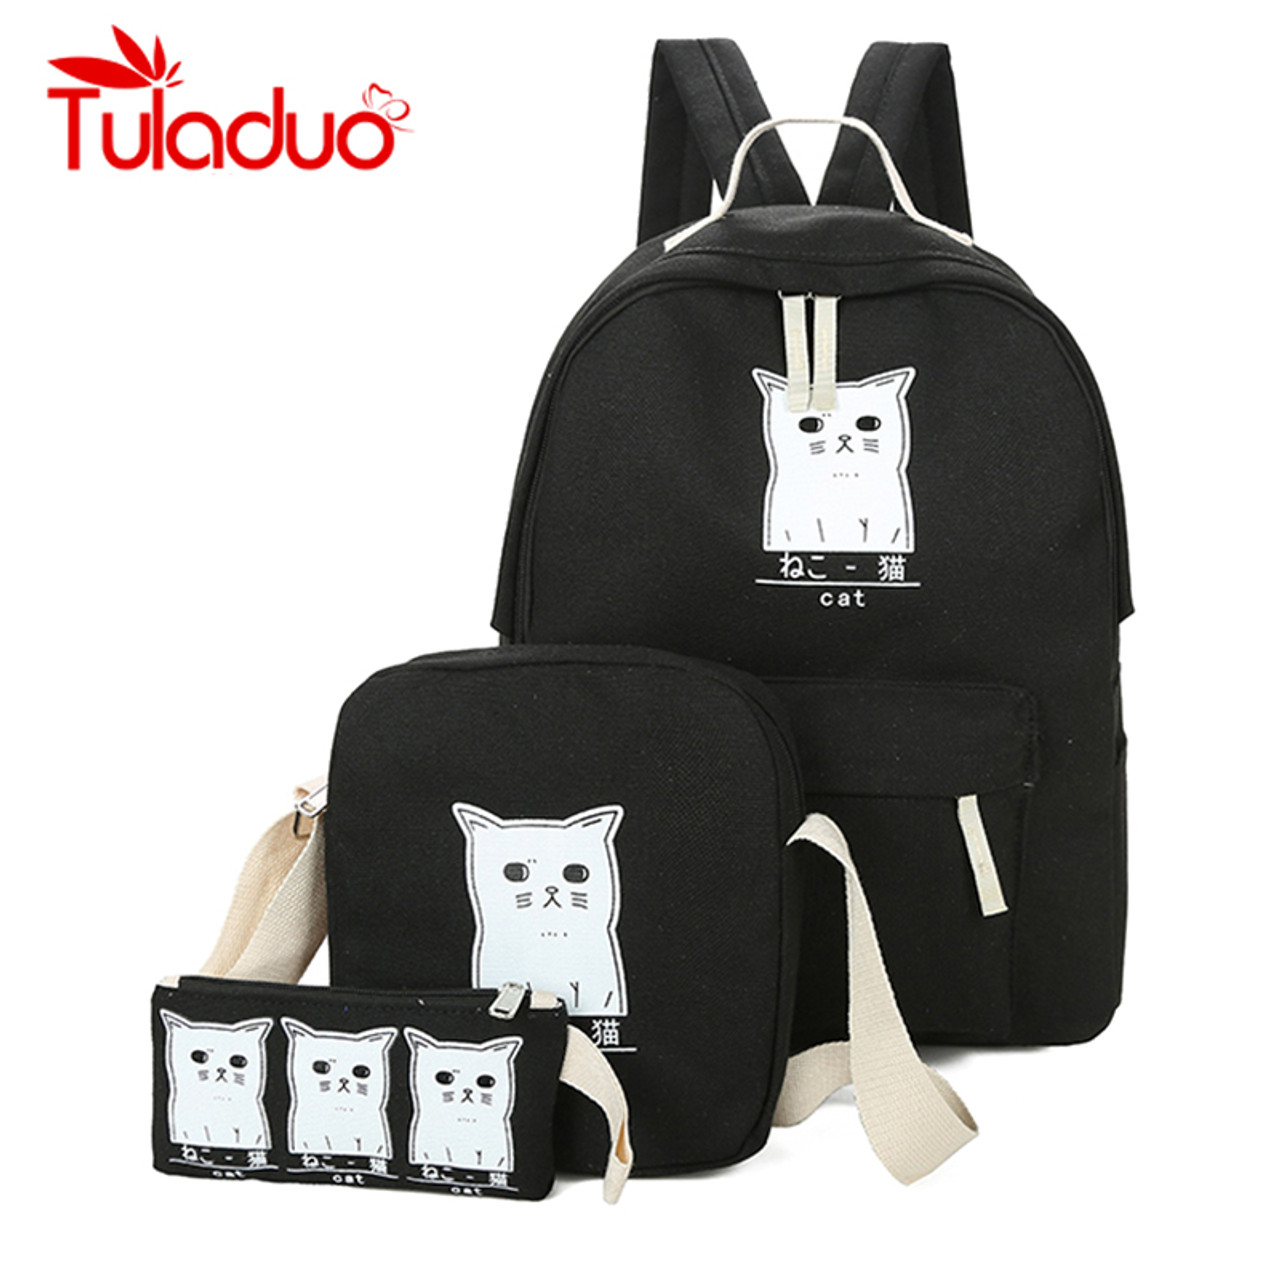 ab1a1db14458 Women Backpack Cat Printing Canvas School Bags For Teenager Girls Preppy  Style 3 Set PC Rucksack Cute Book Bag Mochila Feminina - OnshopDeals.Com